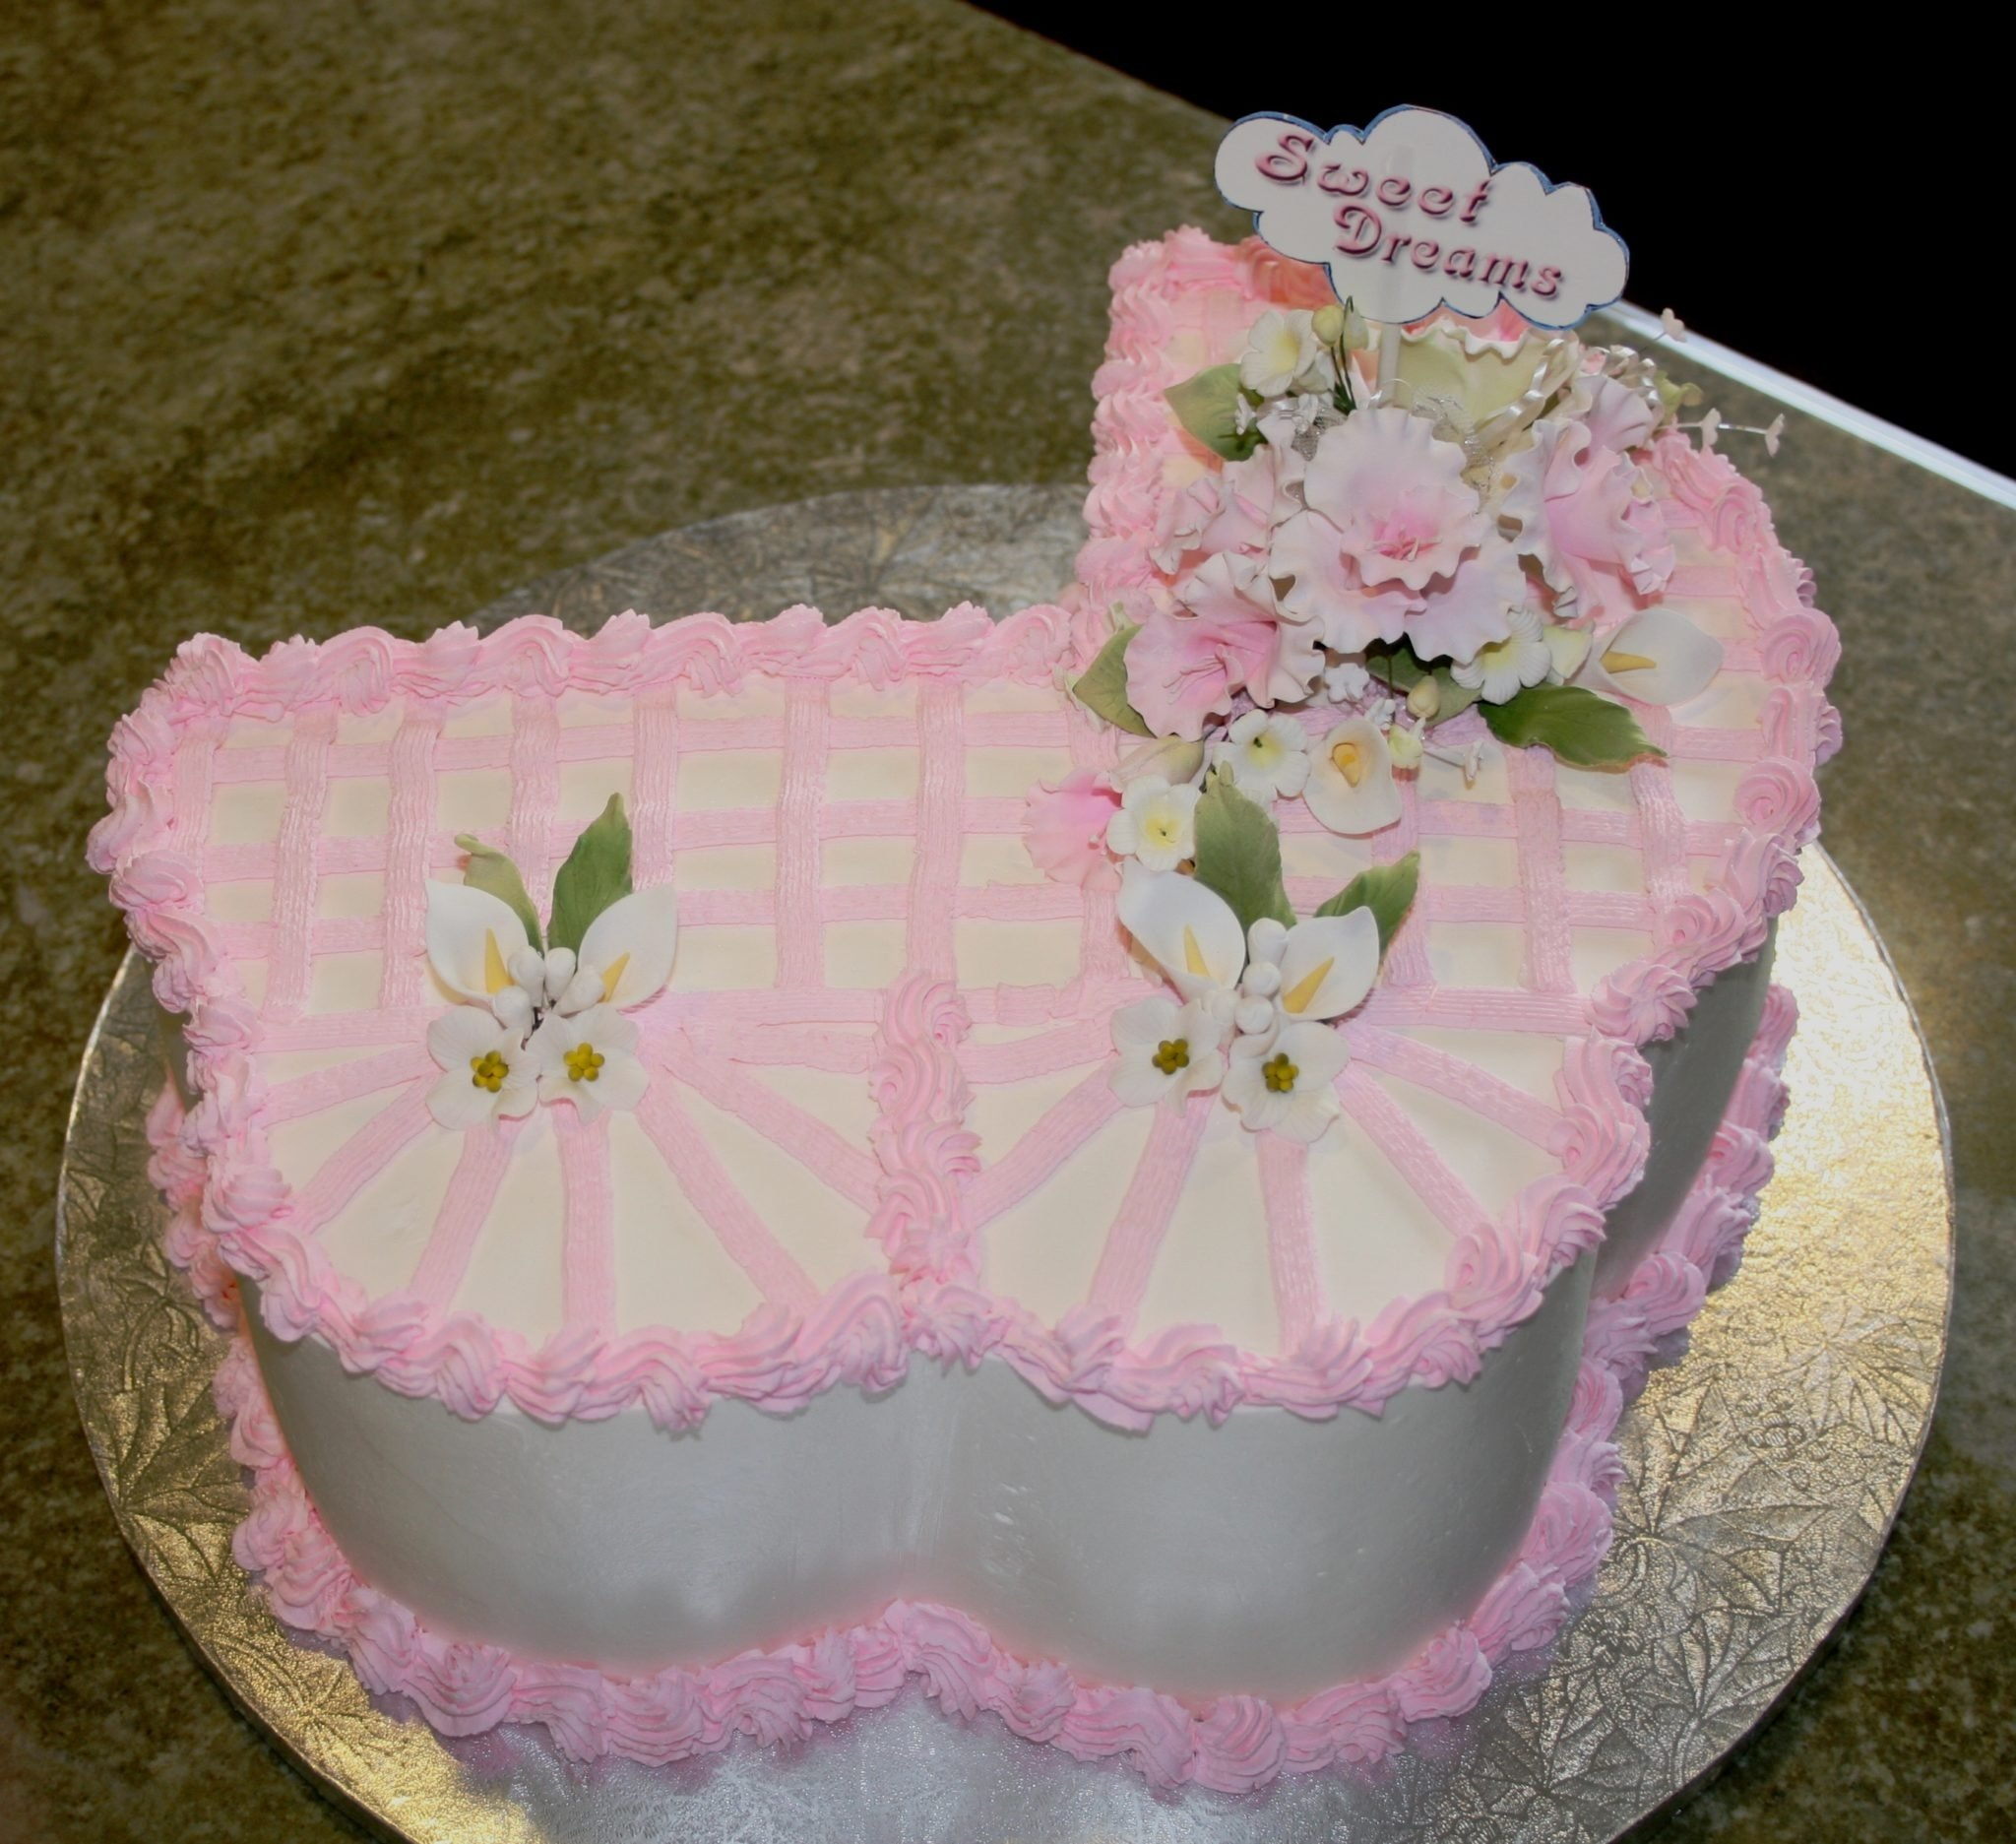 10 Elegant Cake Ideas For Baby Shower 70 baby shower cakes and cupcakes ideas 5 2020